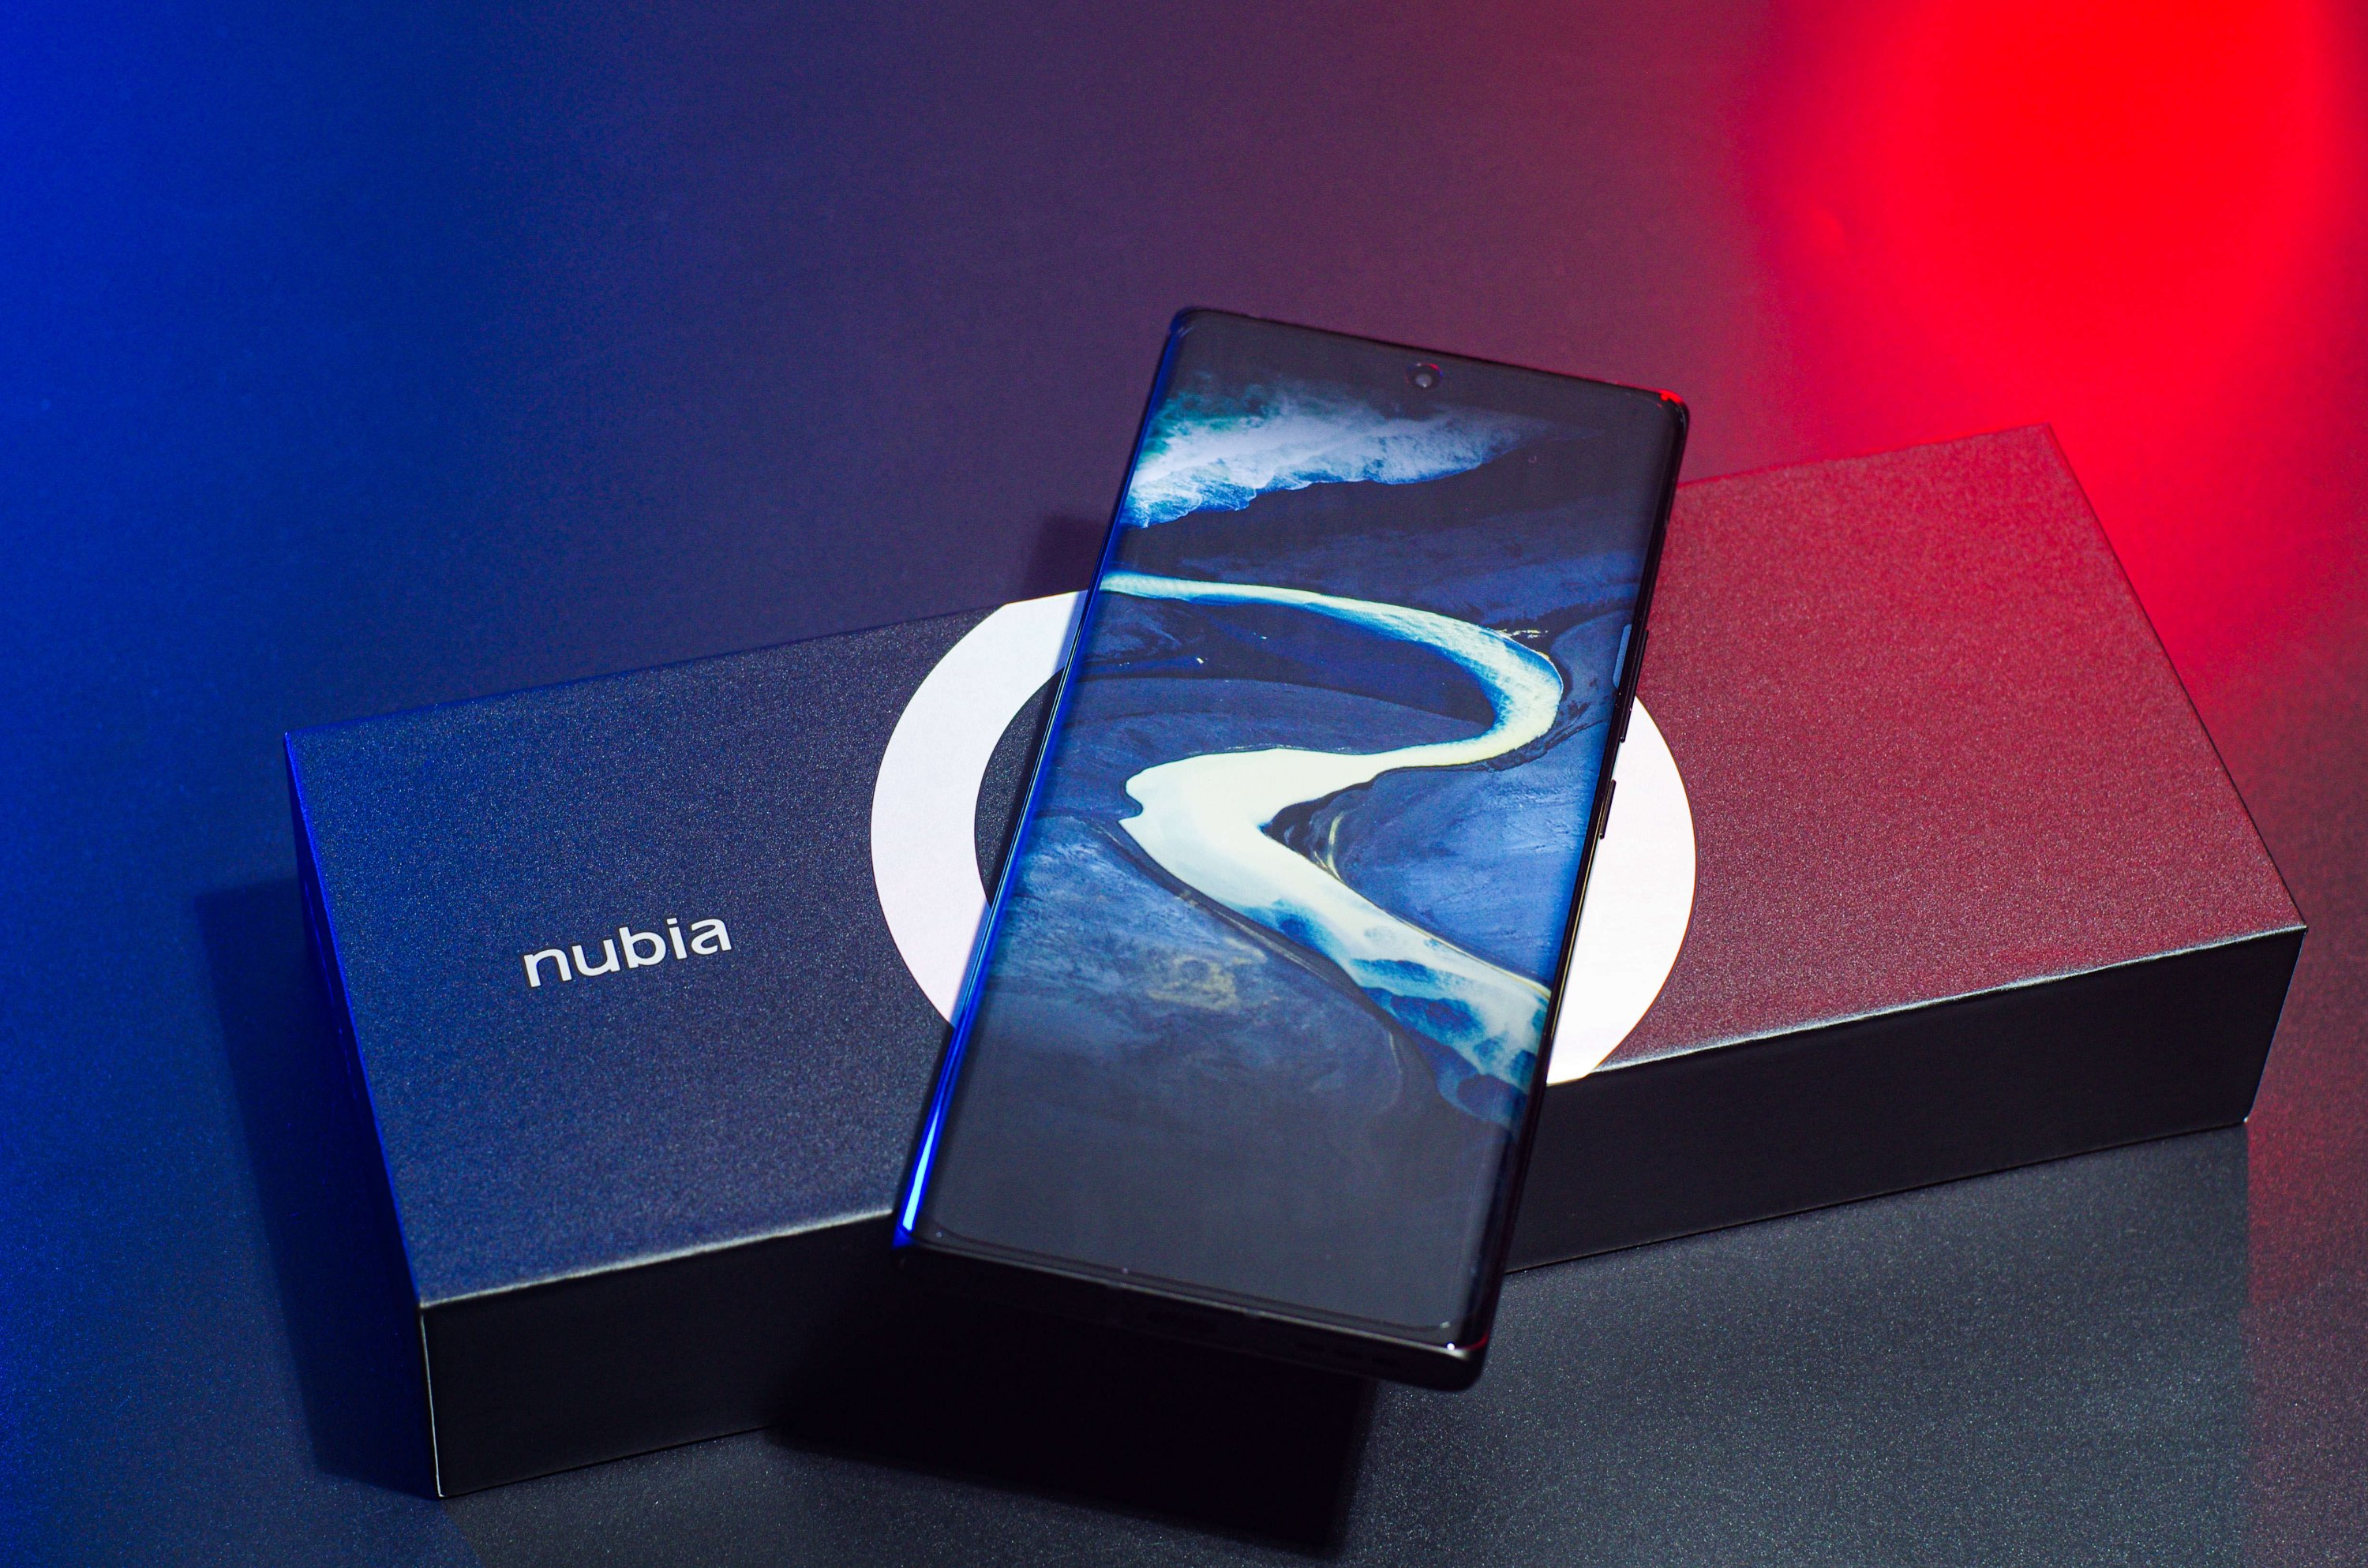 Nubia Z30 Pro Review: Strong Camera Capabilities, But Weaker in Some Area 1